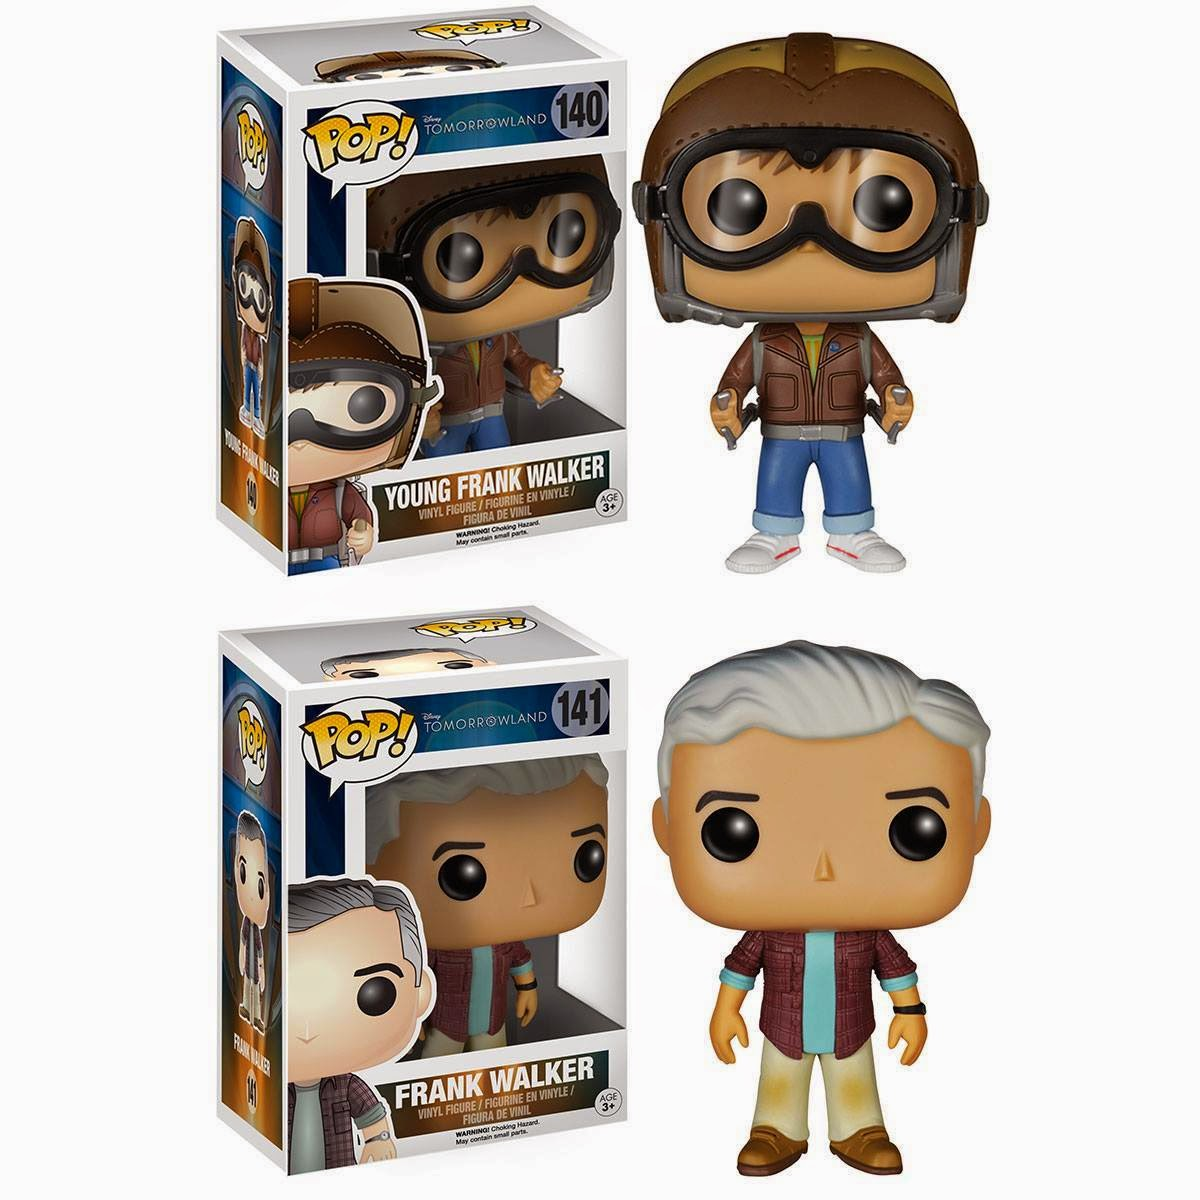 Tomorrow Land Funko Pops!